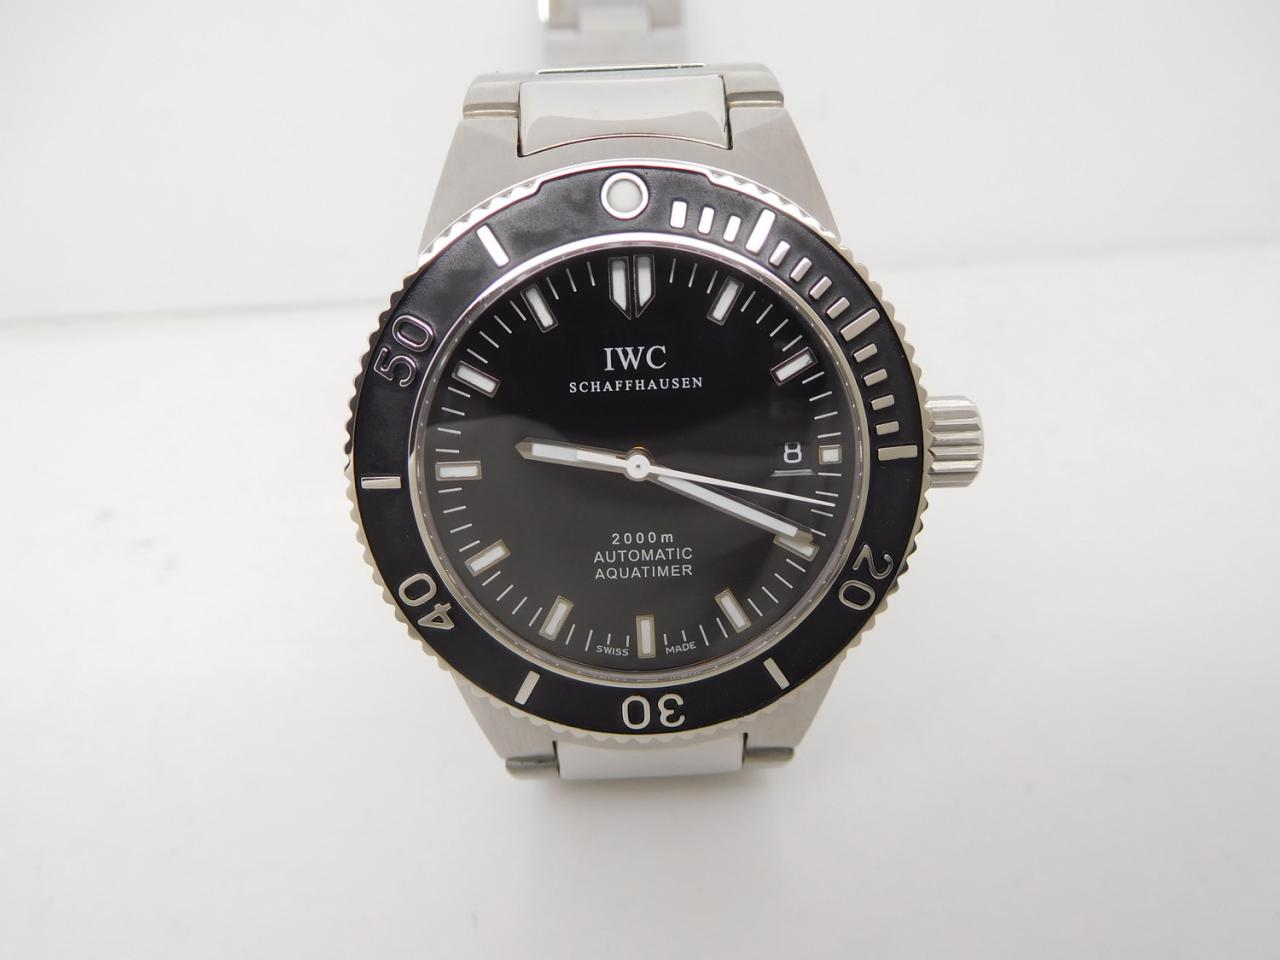 IWC GST Aquatimer Replica